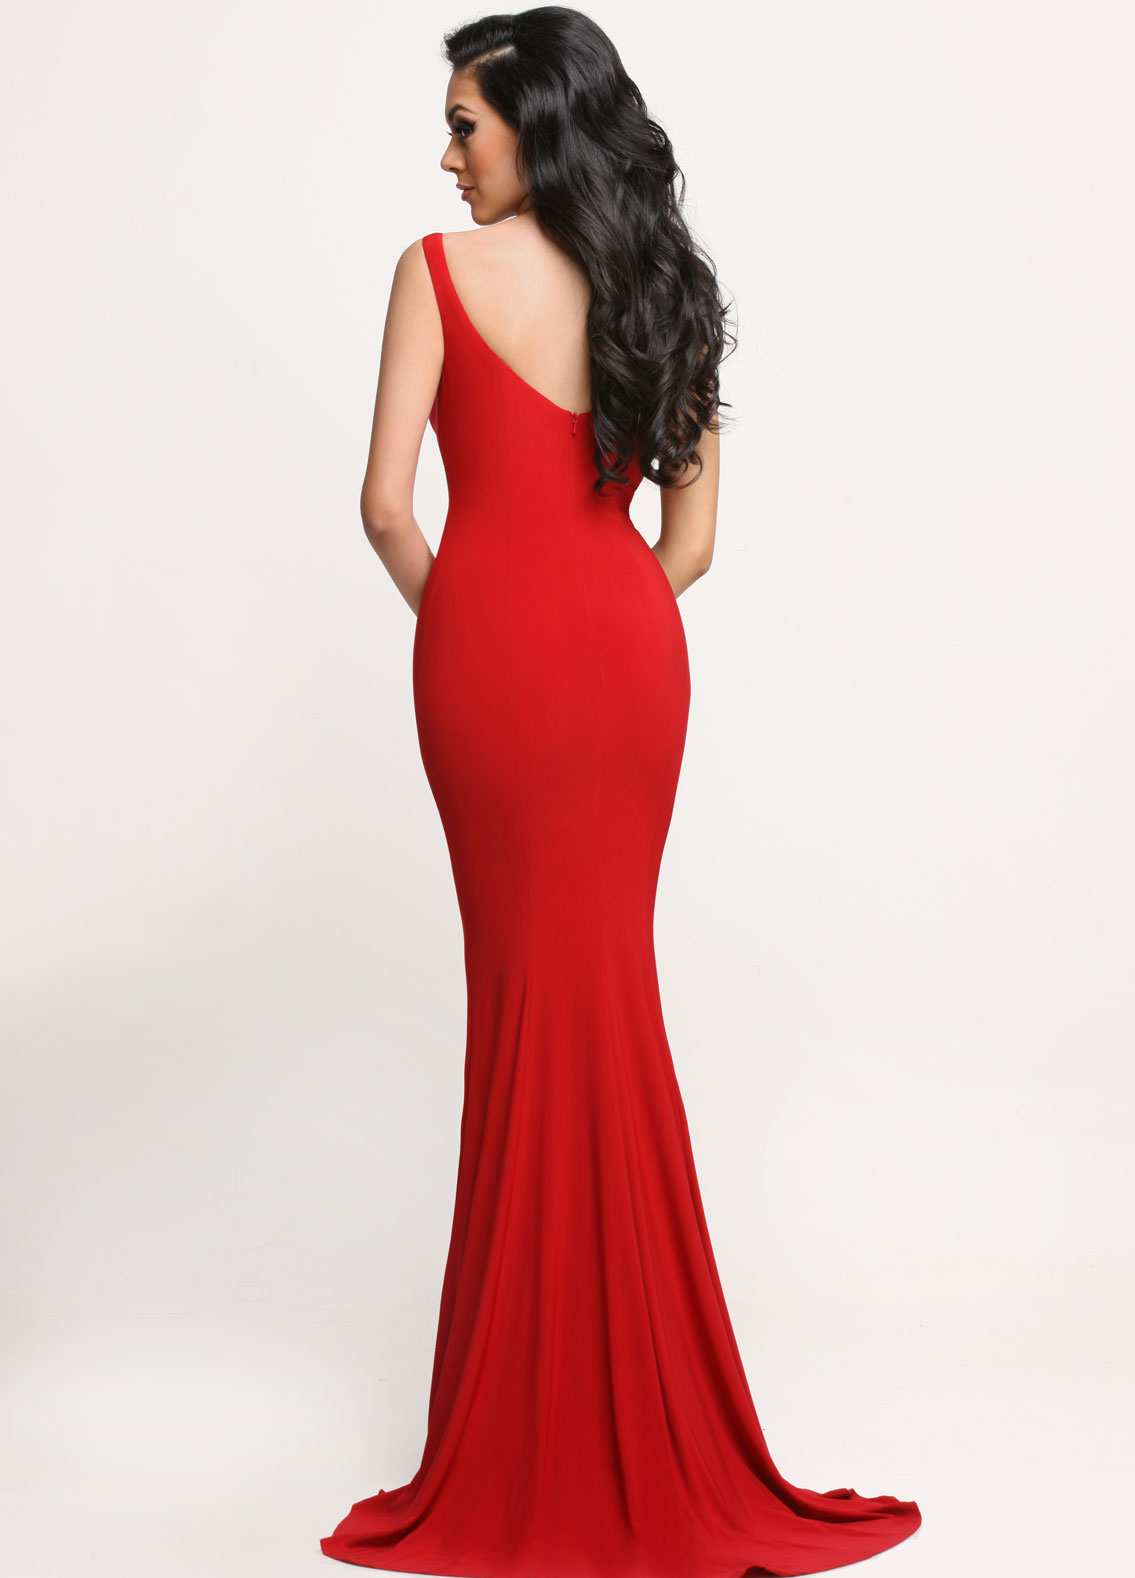 Image showing back view of style #71664